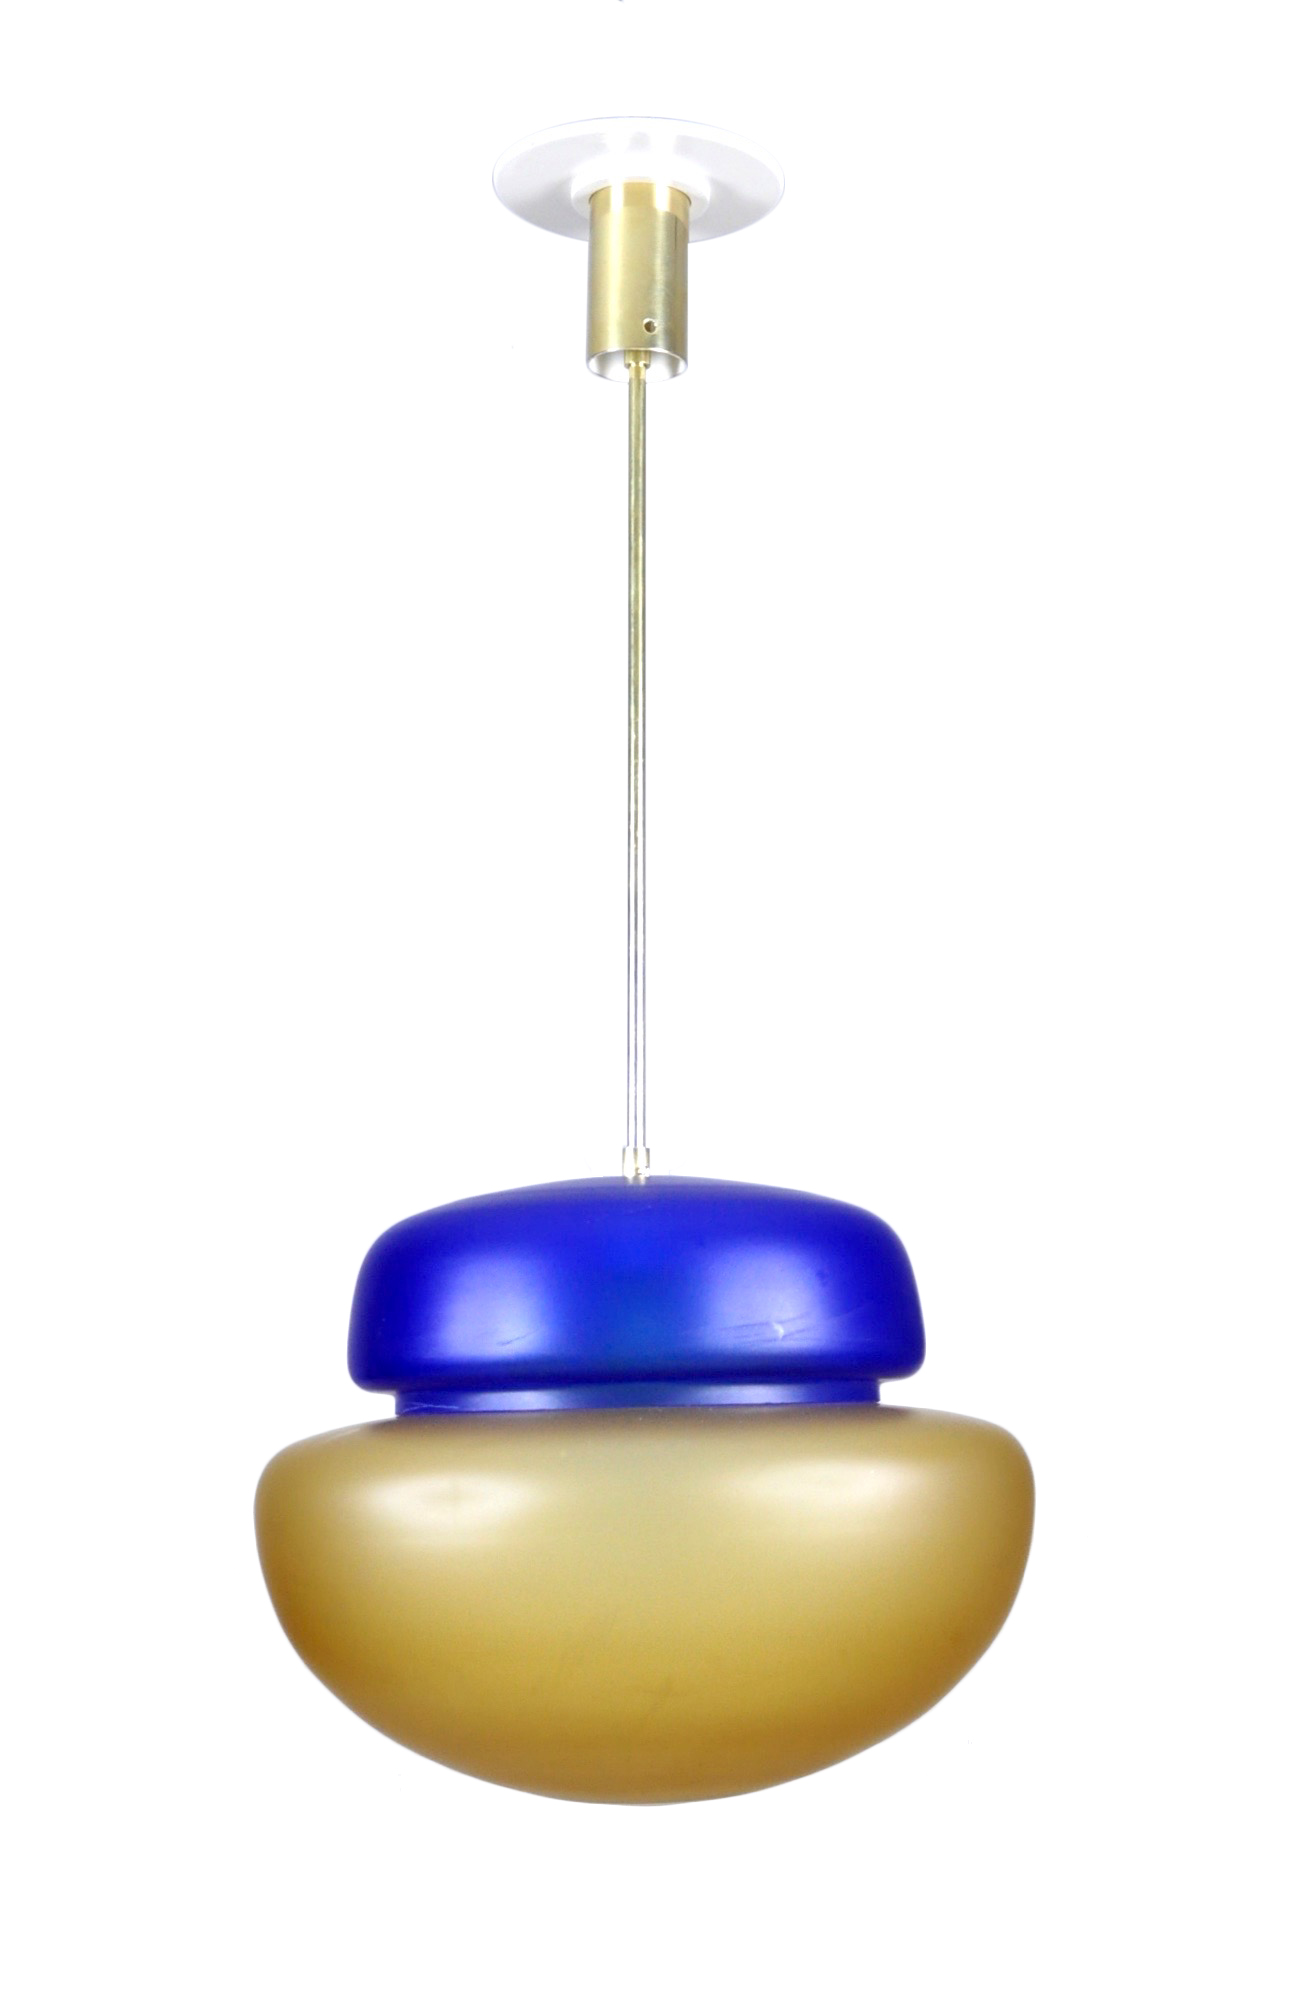 Studio Venini Blue and Yellow Pendant, Murano, Italy, 1960s Image